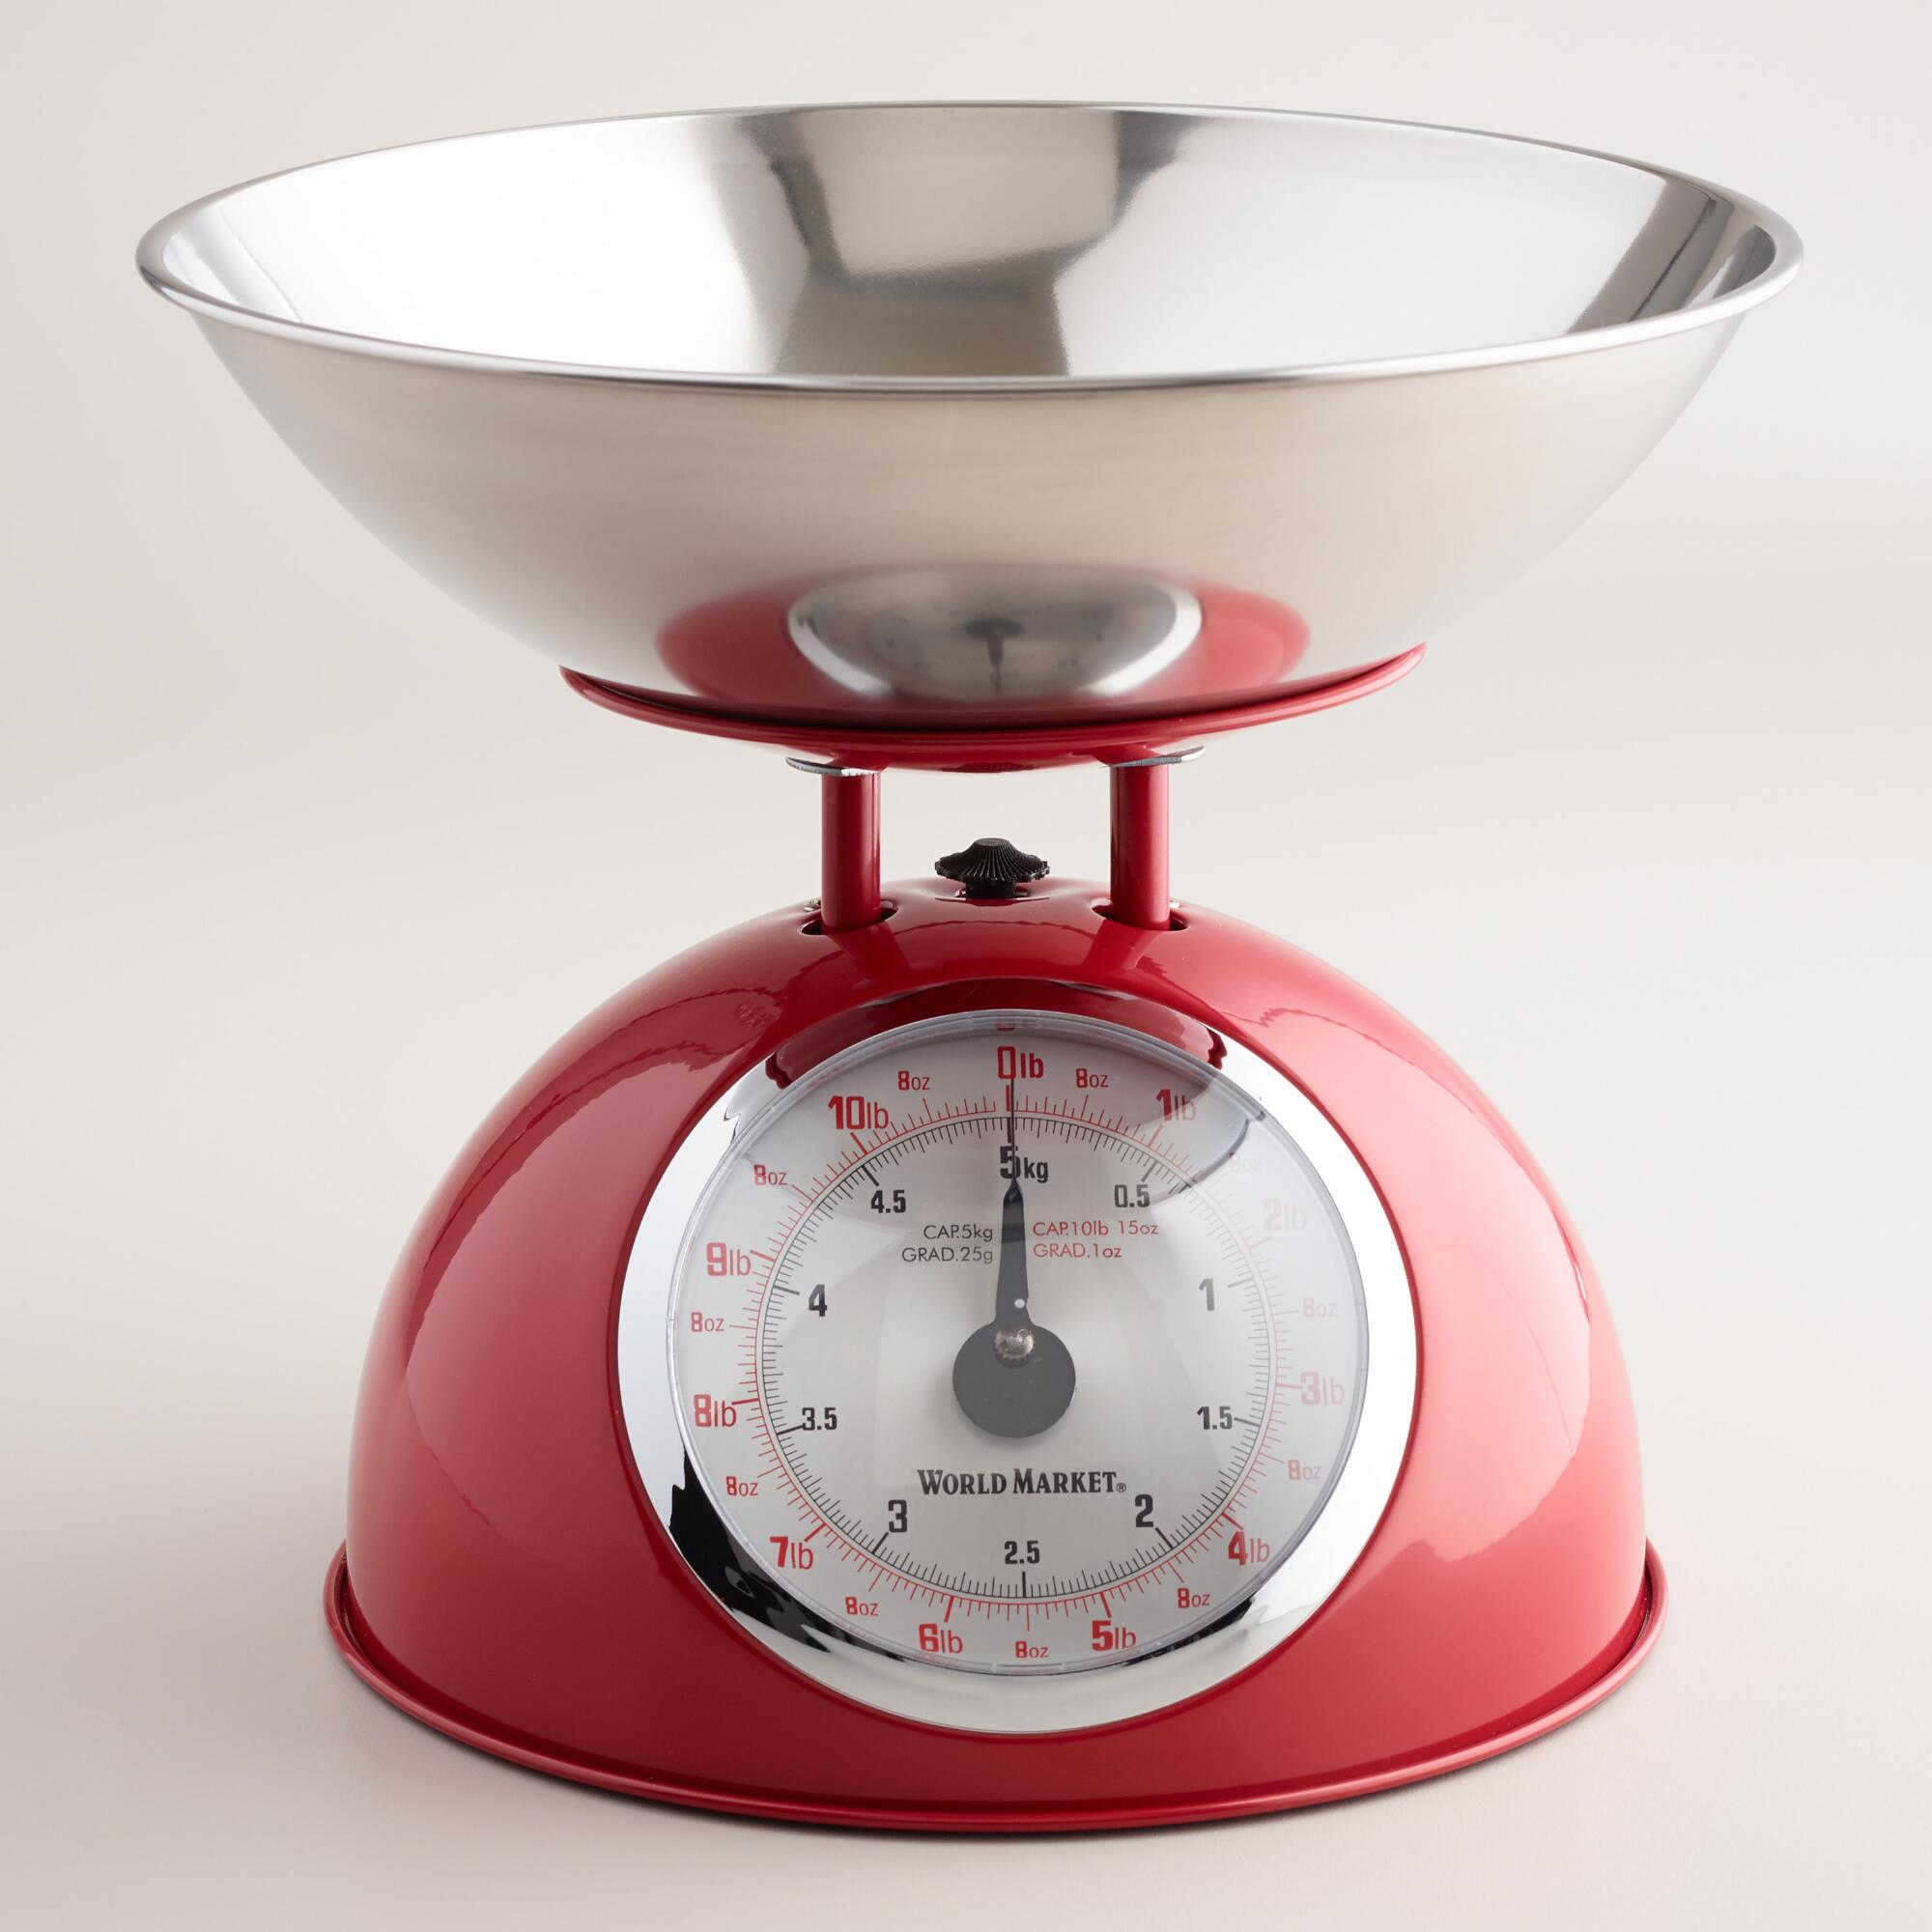 Antique Kitchen Scale: Red Vintage-Style Metal Kitchen Scale